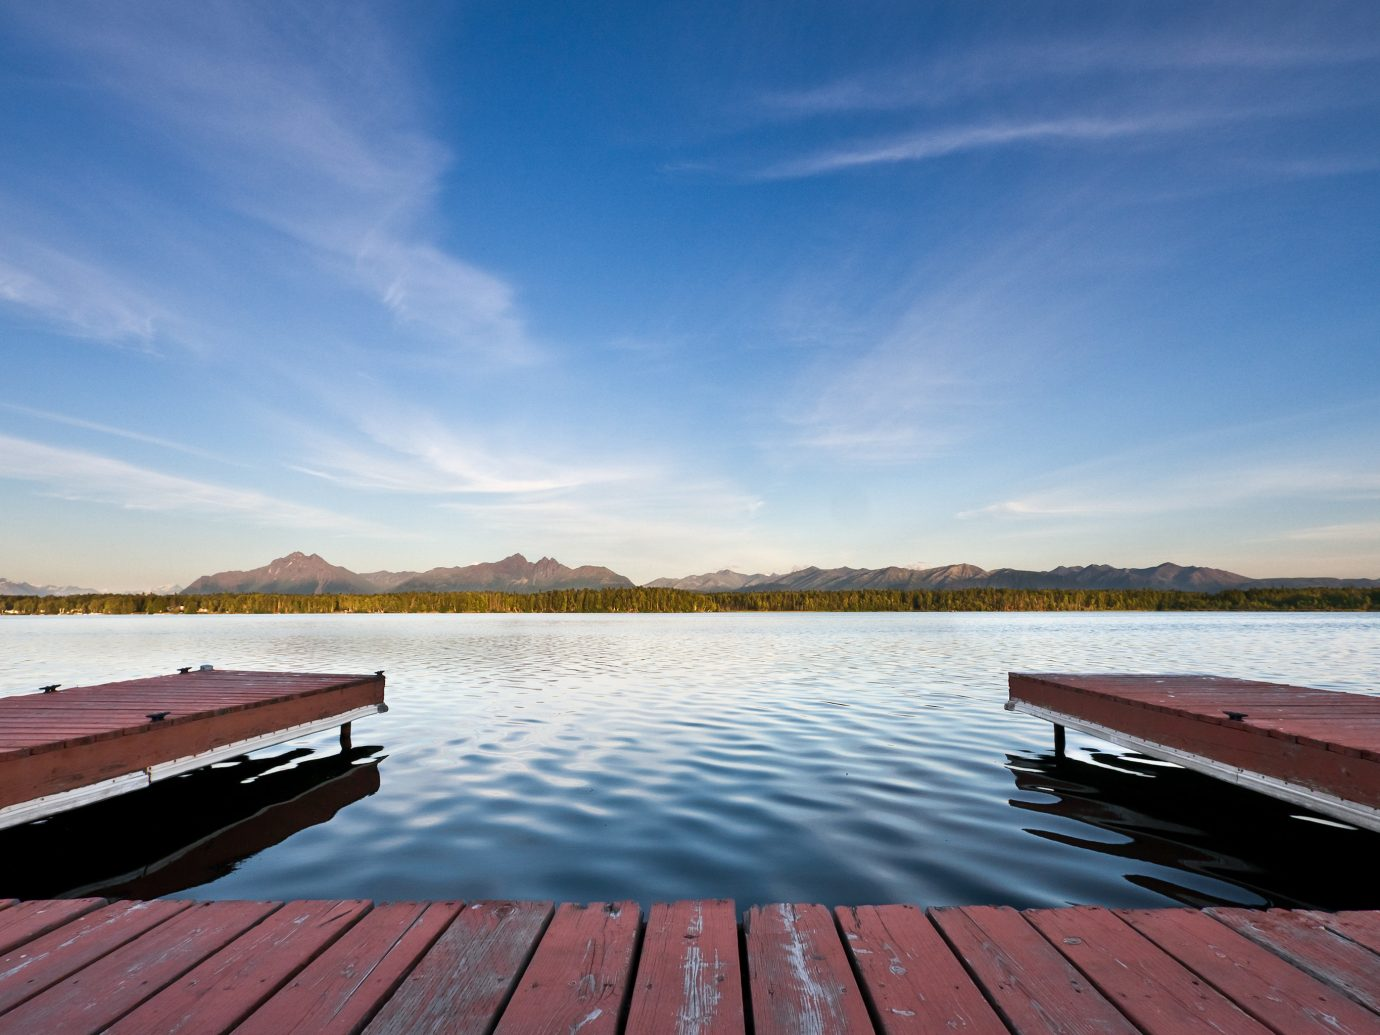 Lakes + Rivers Outdoors + Adventure Trip Ideas sky water bench outdoor wooden ground Boat shore Sea vehicle pier horizon dock watercraft rowing Lake cloud vacation reflection Ocean bay dusk Coast Sunset boating overlooking empty